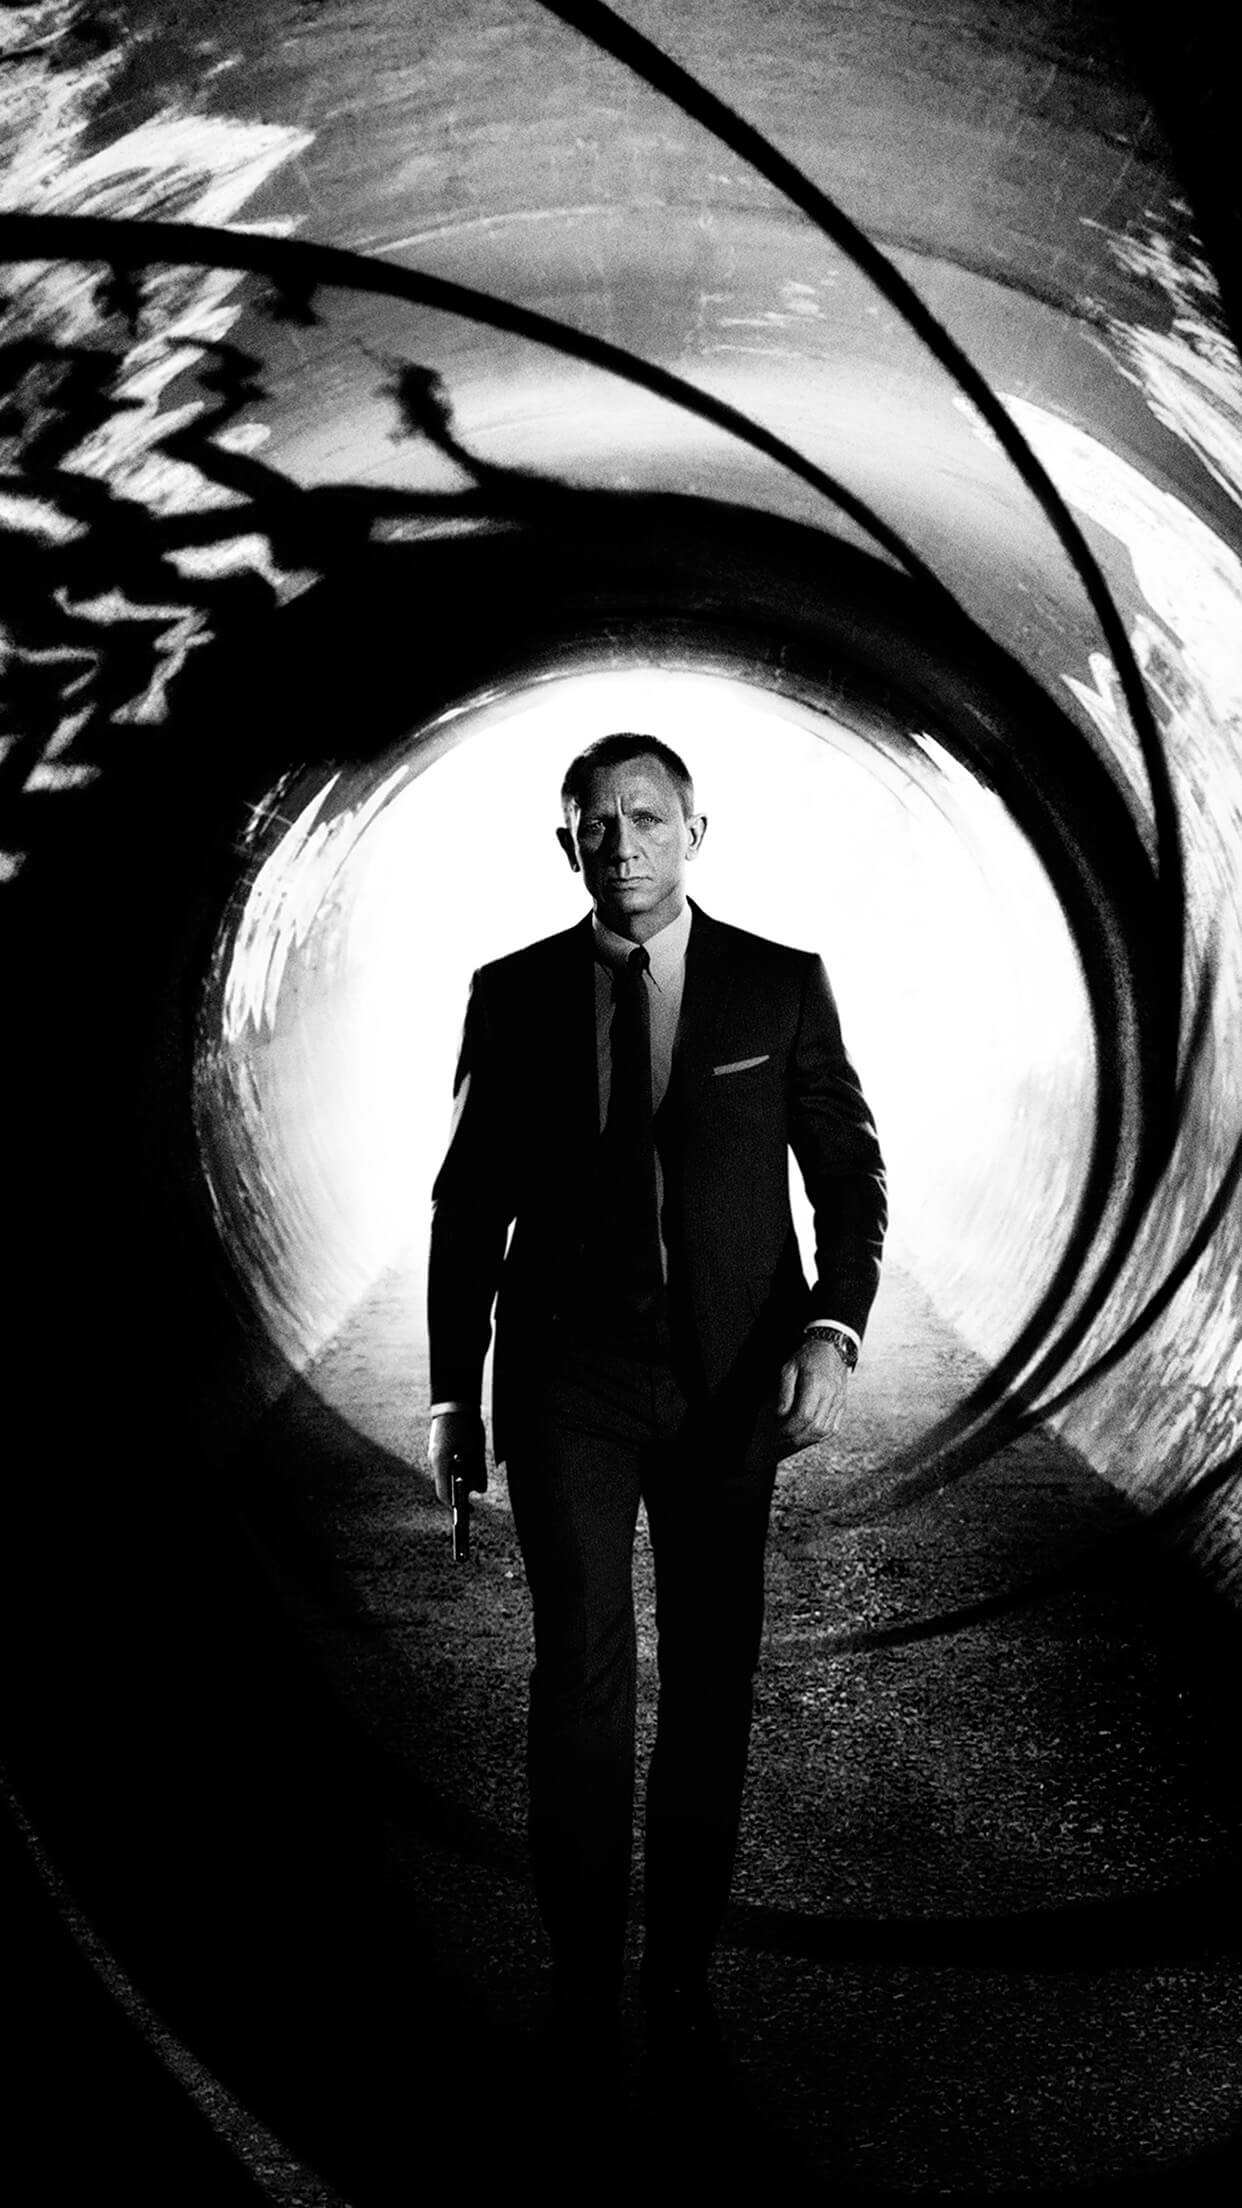 spectre 007 wallpaper iphone